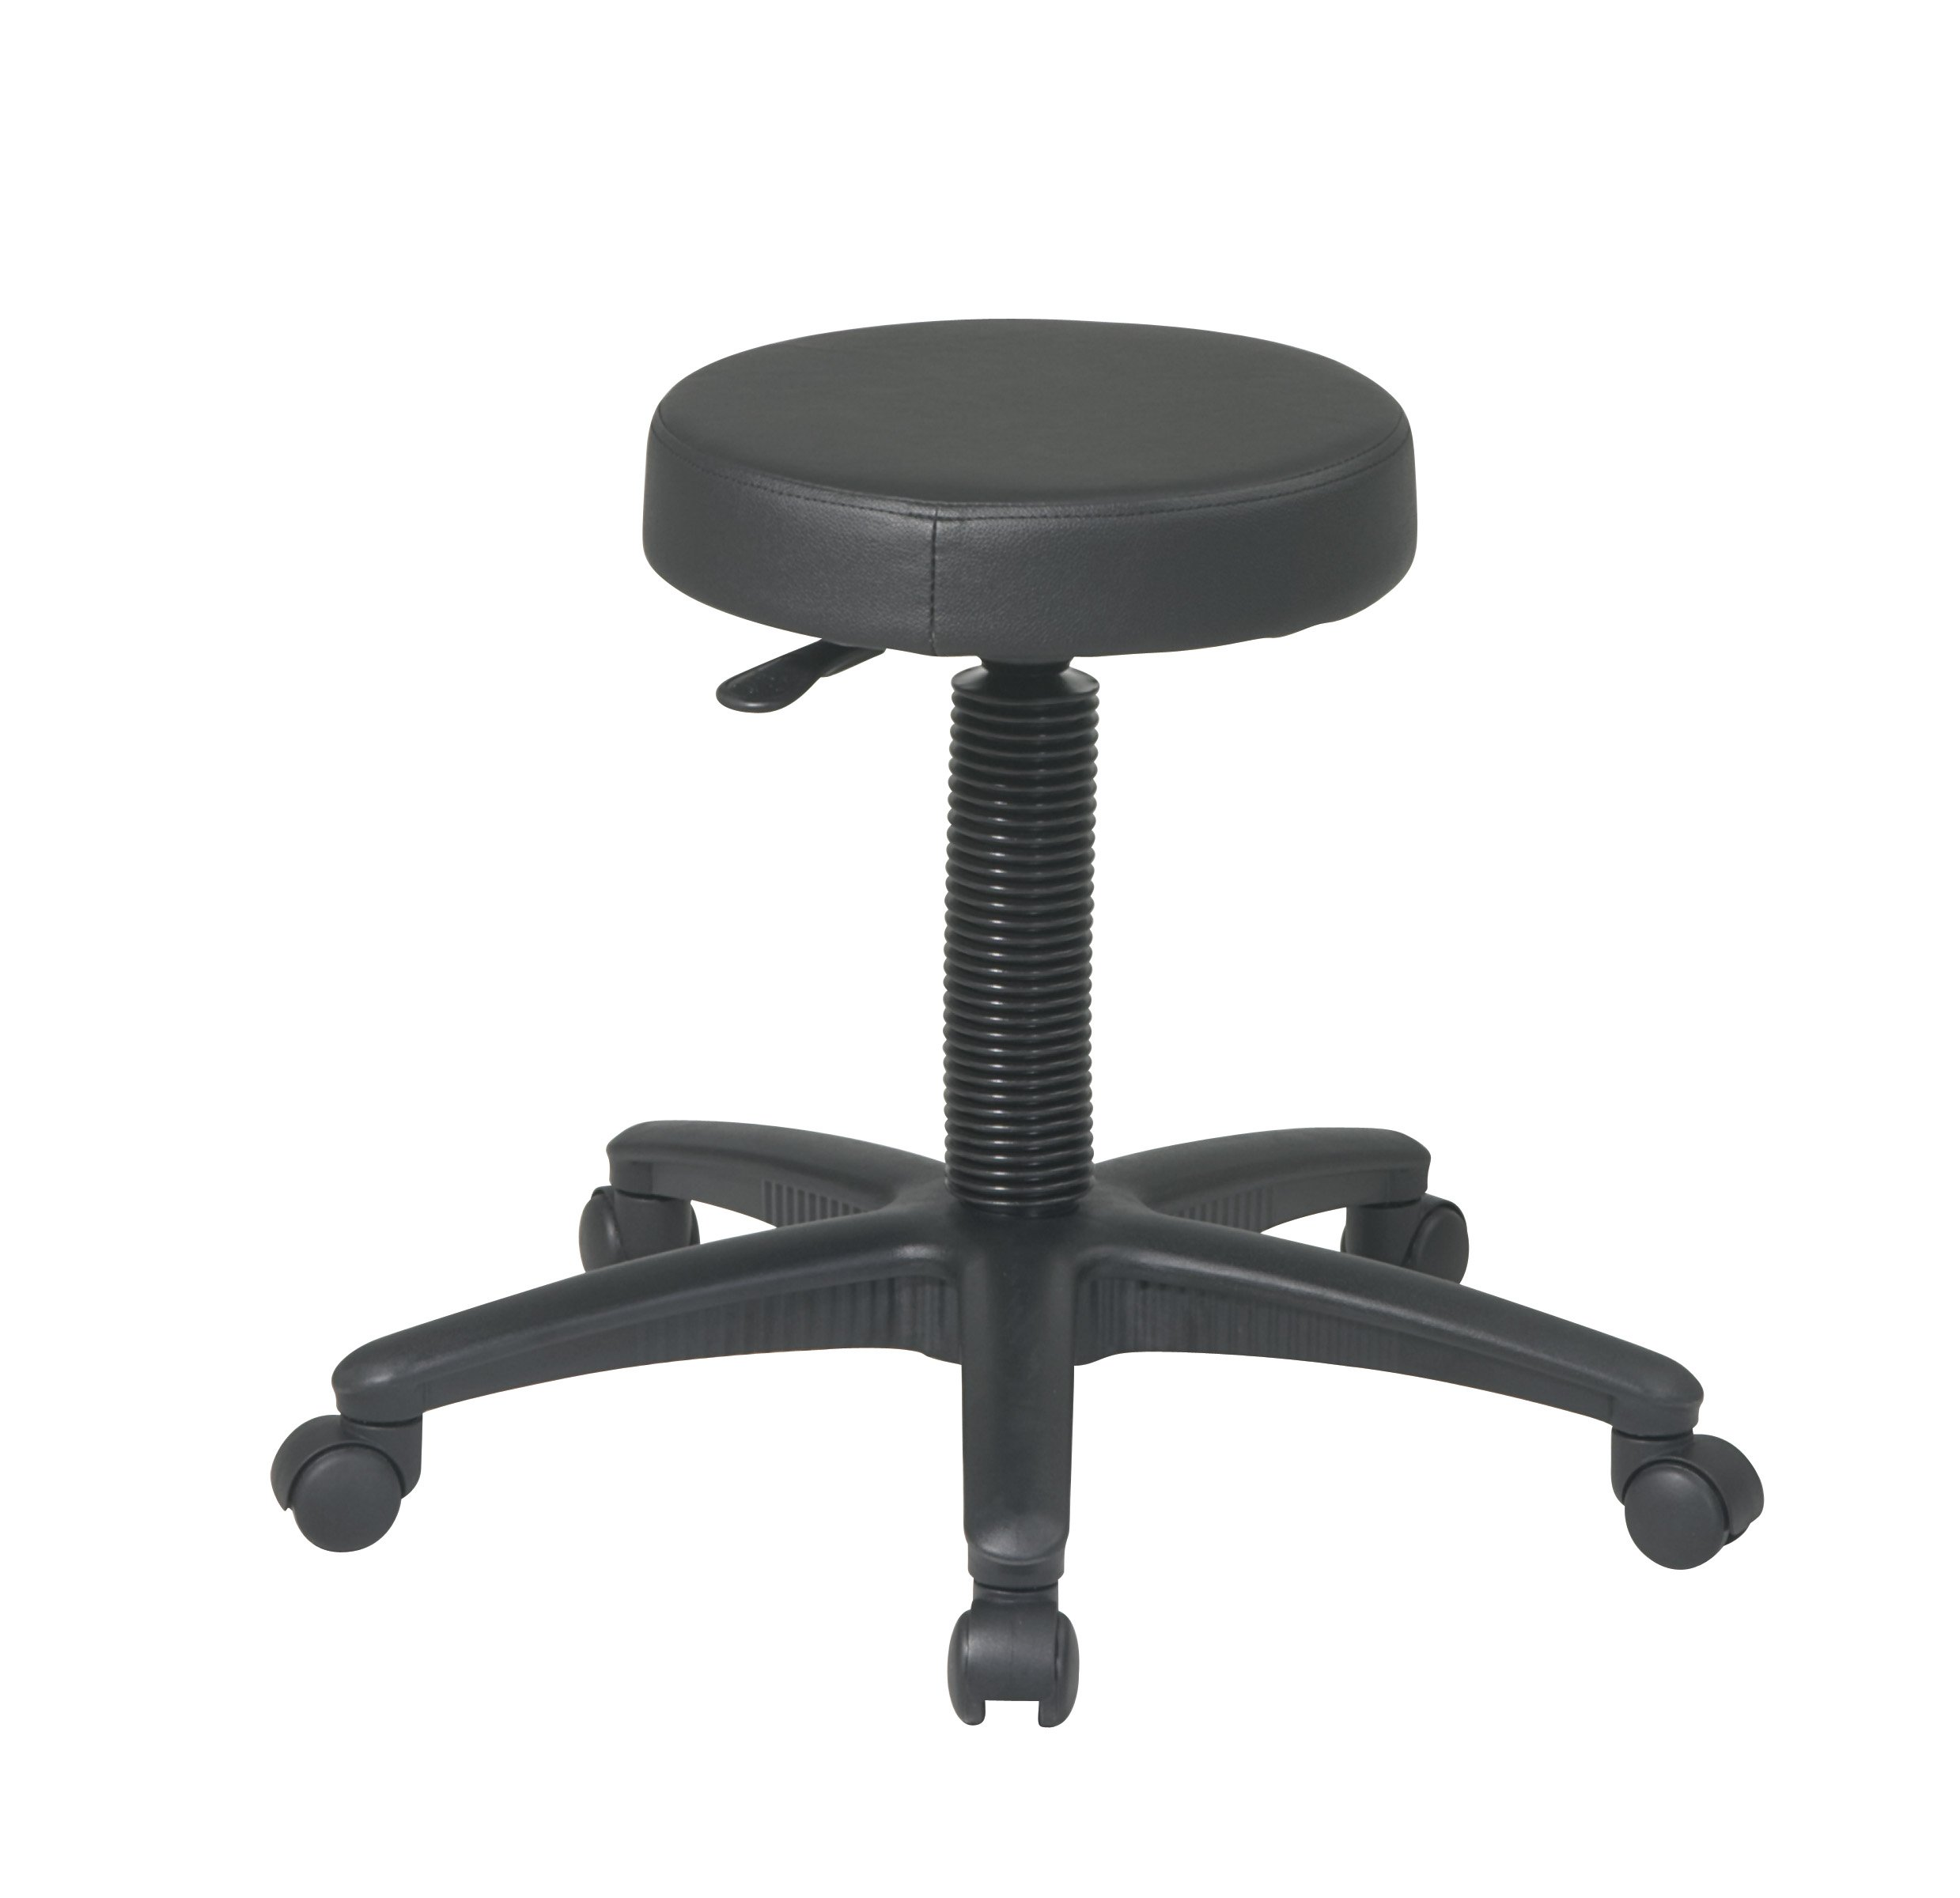 Office Star Thick Padded Vinyl Seat Backless Drafting Stool, Black, 17.25-24.5-Inch Heigh Adjustable